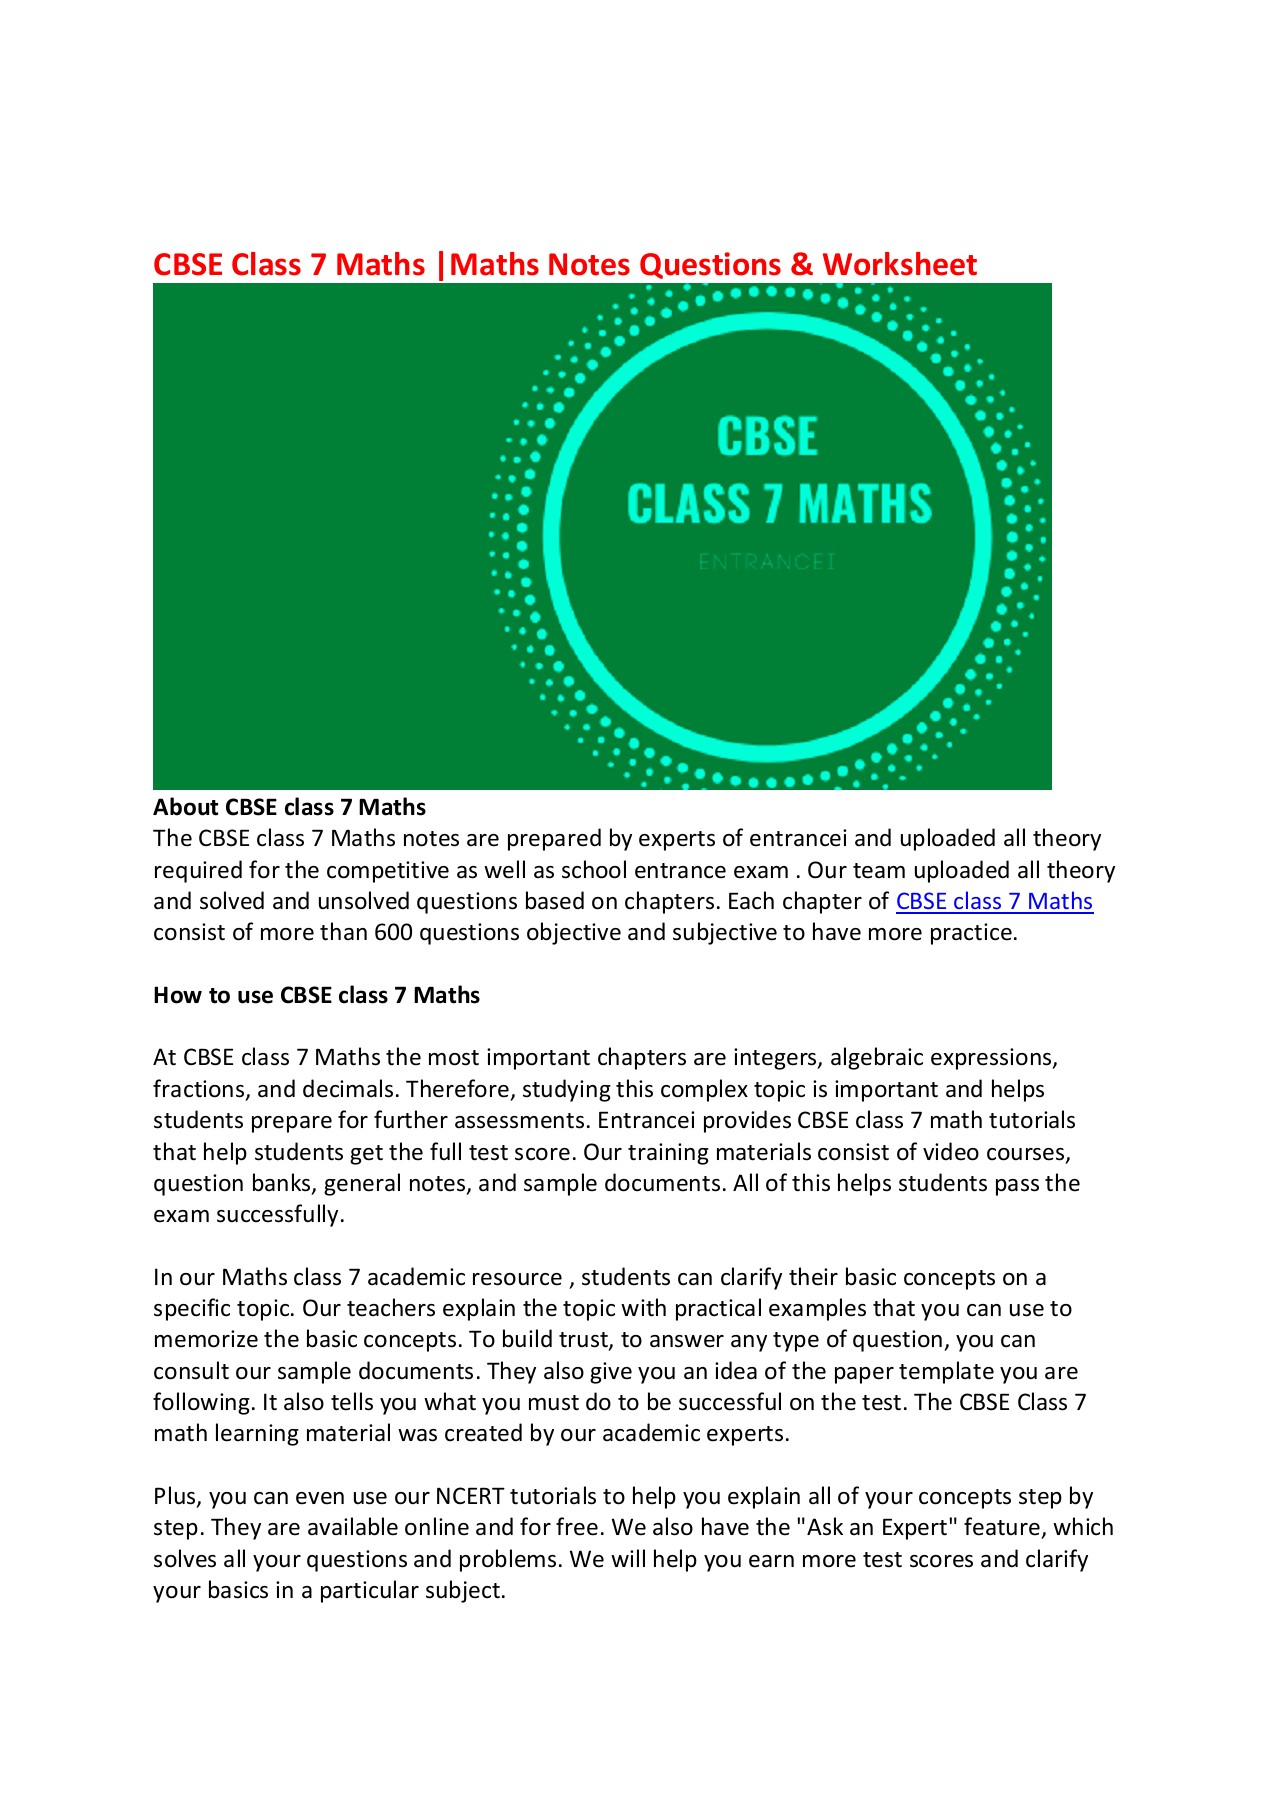 small resolution of CBSE class 7 Maths Pages 1 - 2 - Flip PDF Download   FlipHTML5